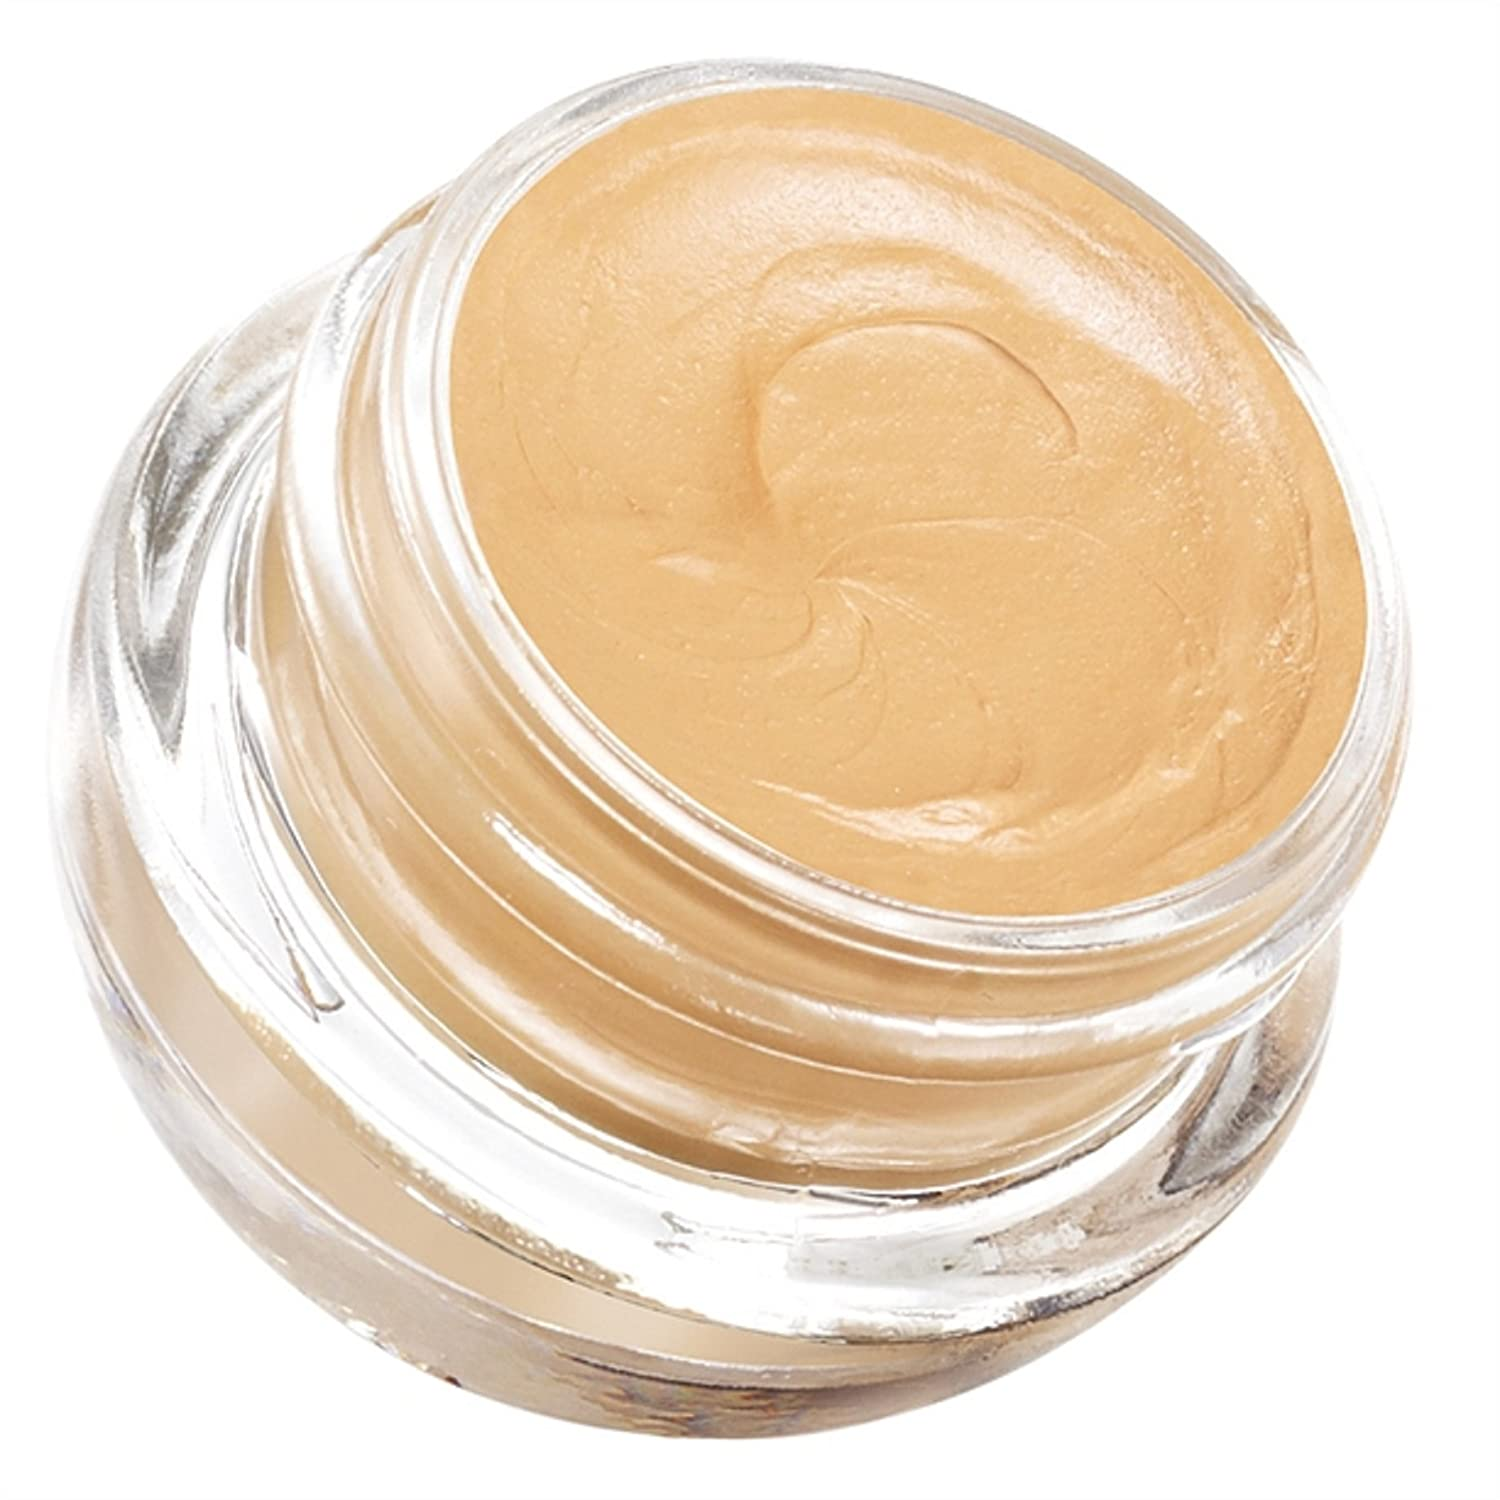 Avon Eyeshadow Primer in Light Beige 46847